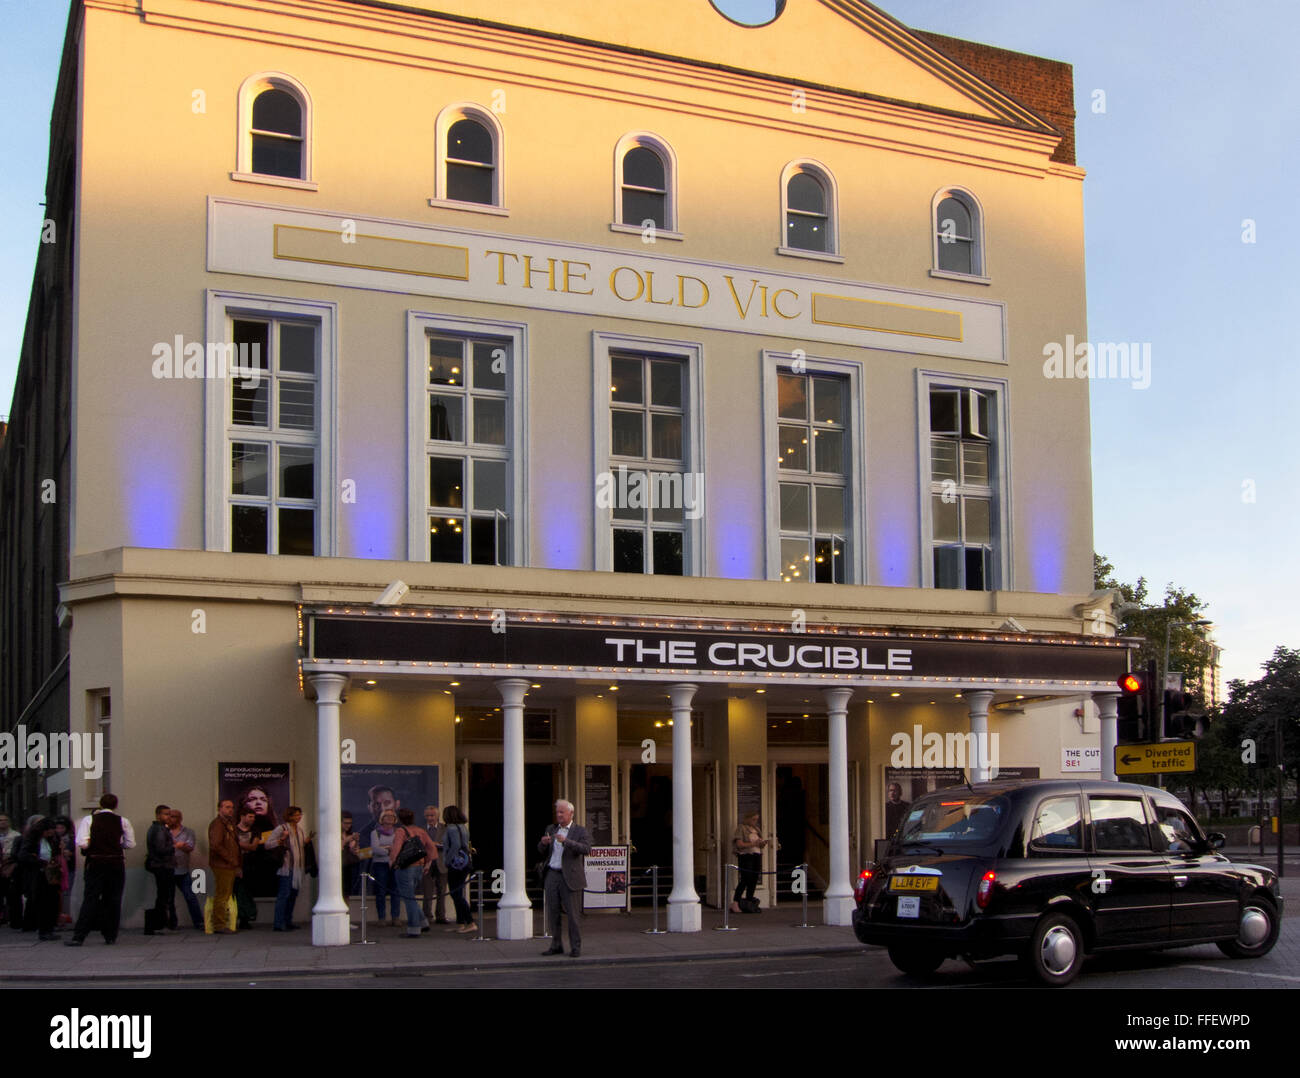 The Old Vic Theatre in London during performances of The Crucible, starring Richard Armitage in 2014. - Stock Image